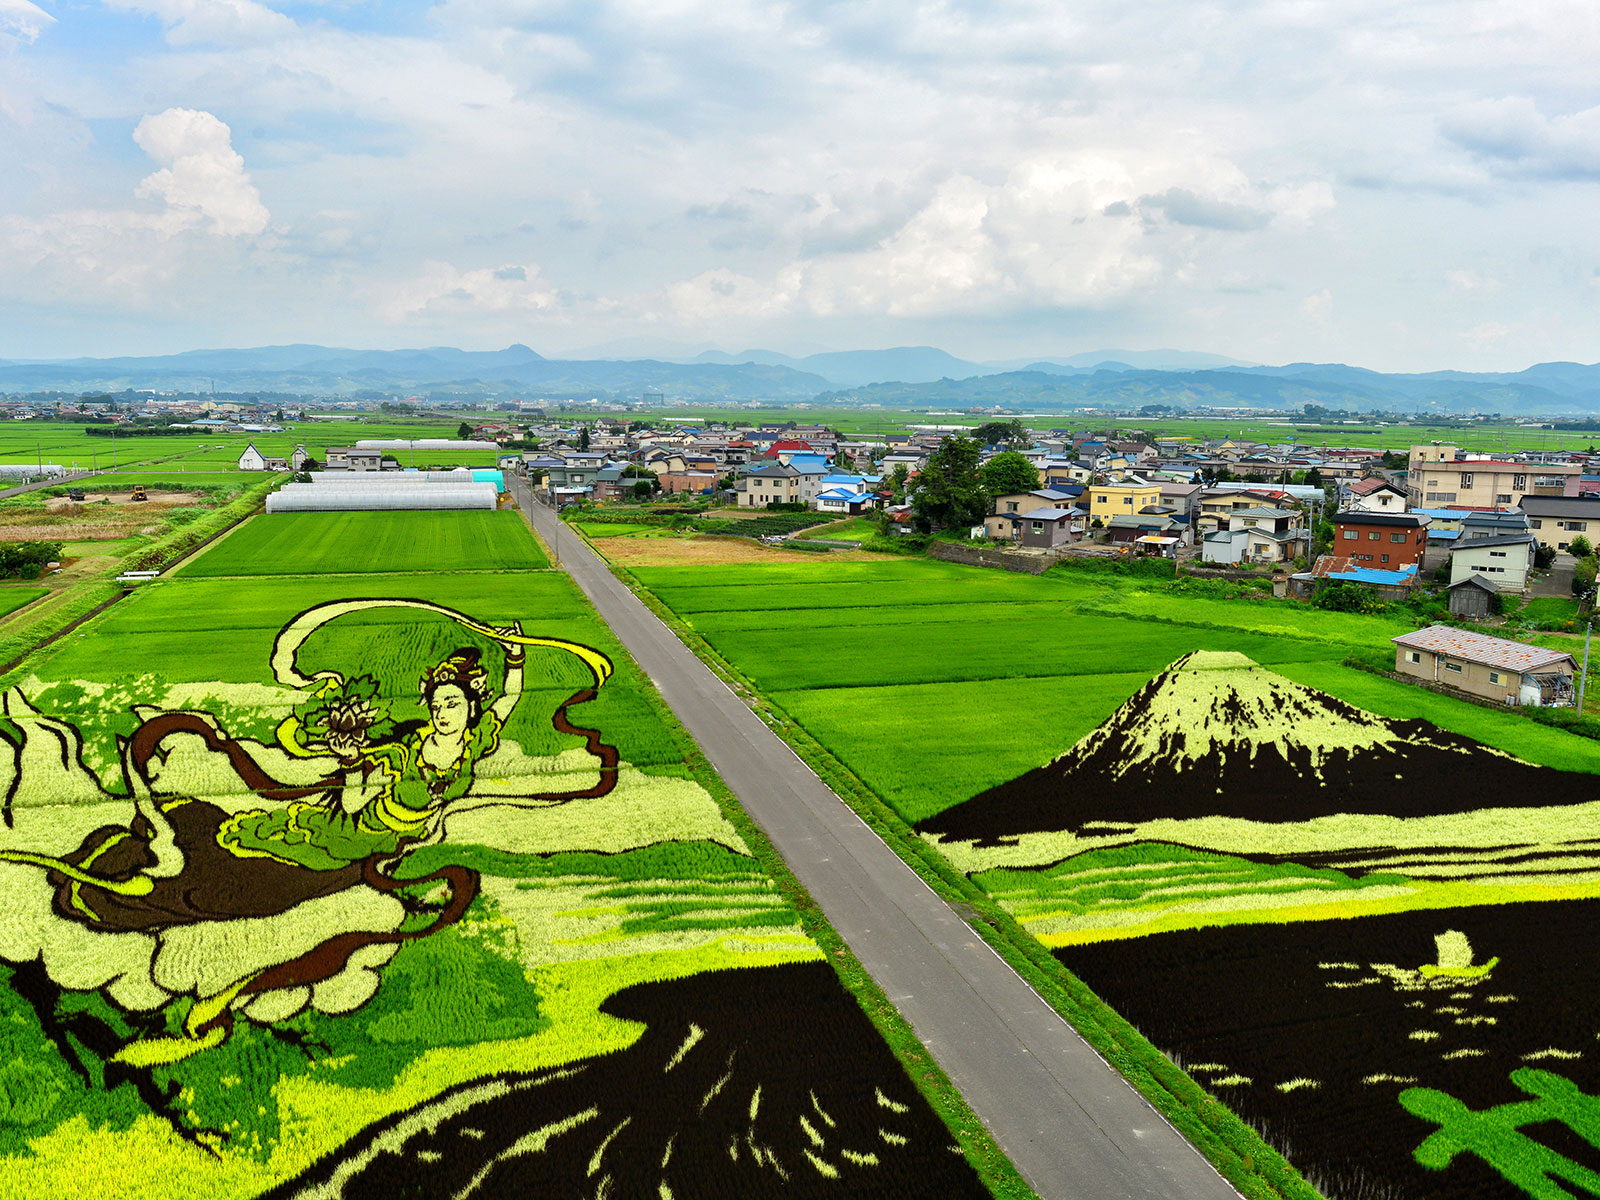 town in japan does rice patty art